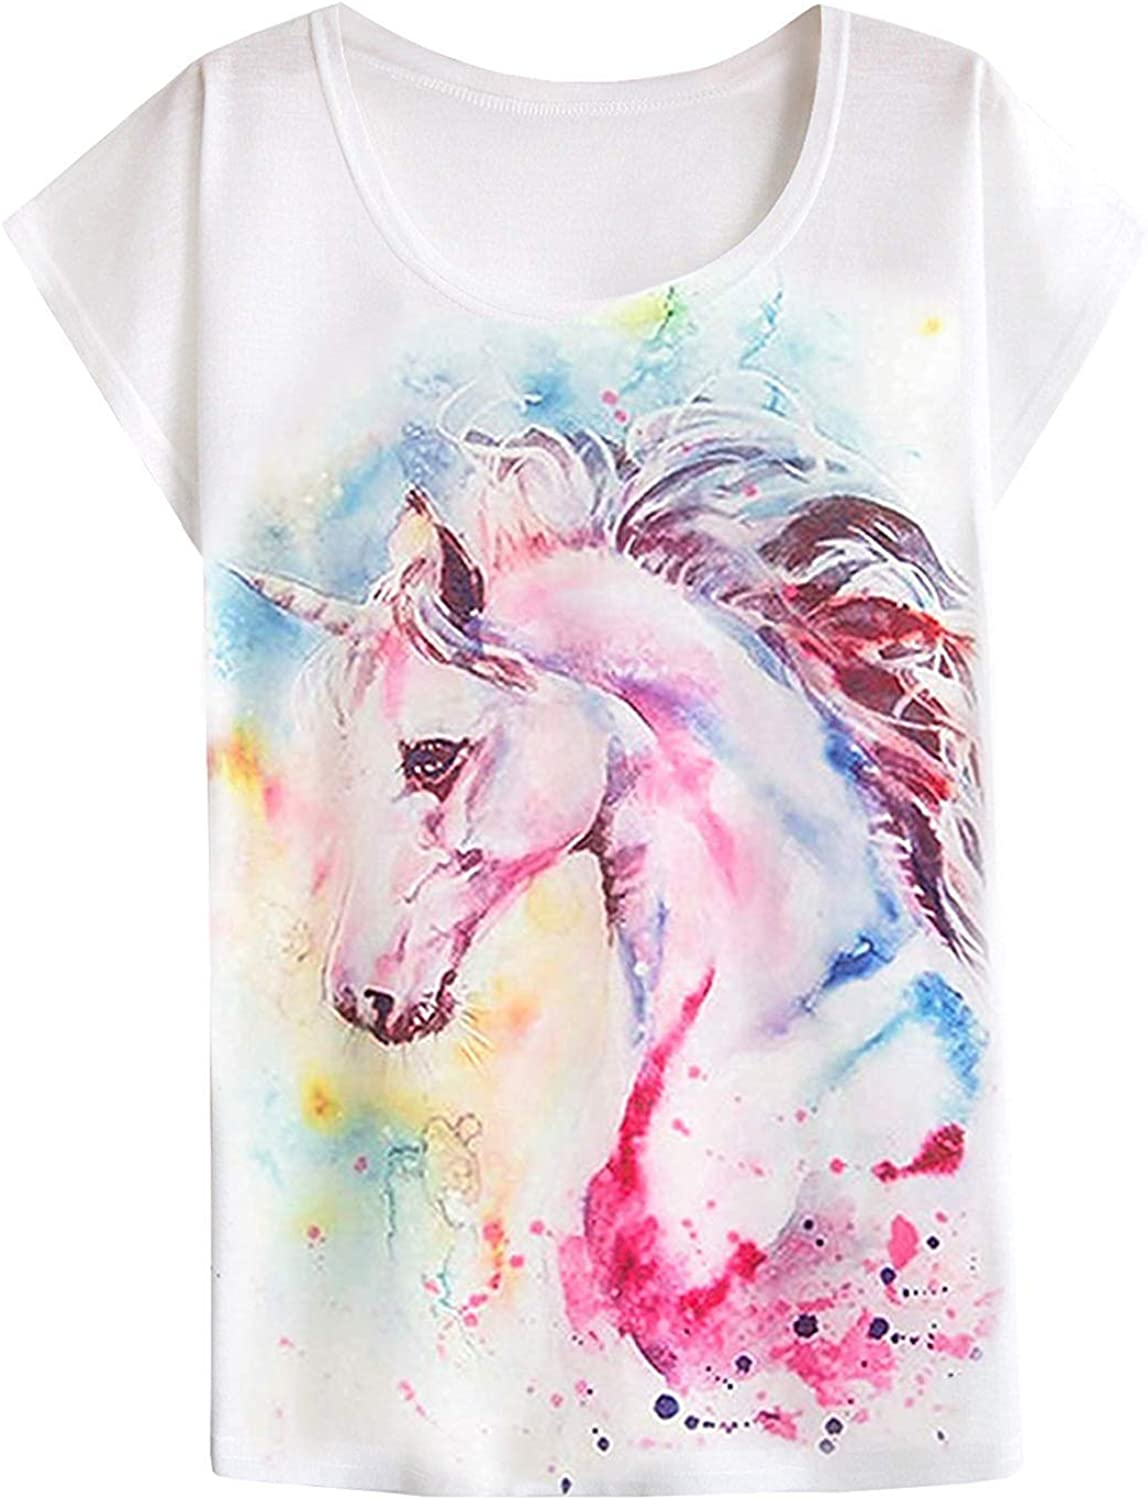 Max sold out 71% OFF futurino Women's Dream Mysterious Horse Sleeve Short Tops Print